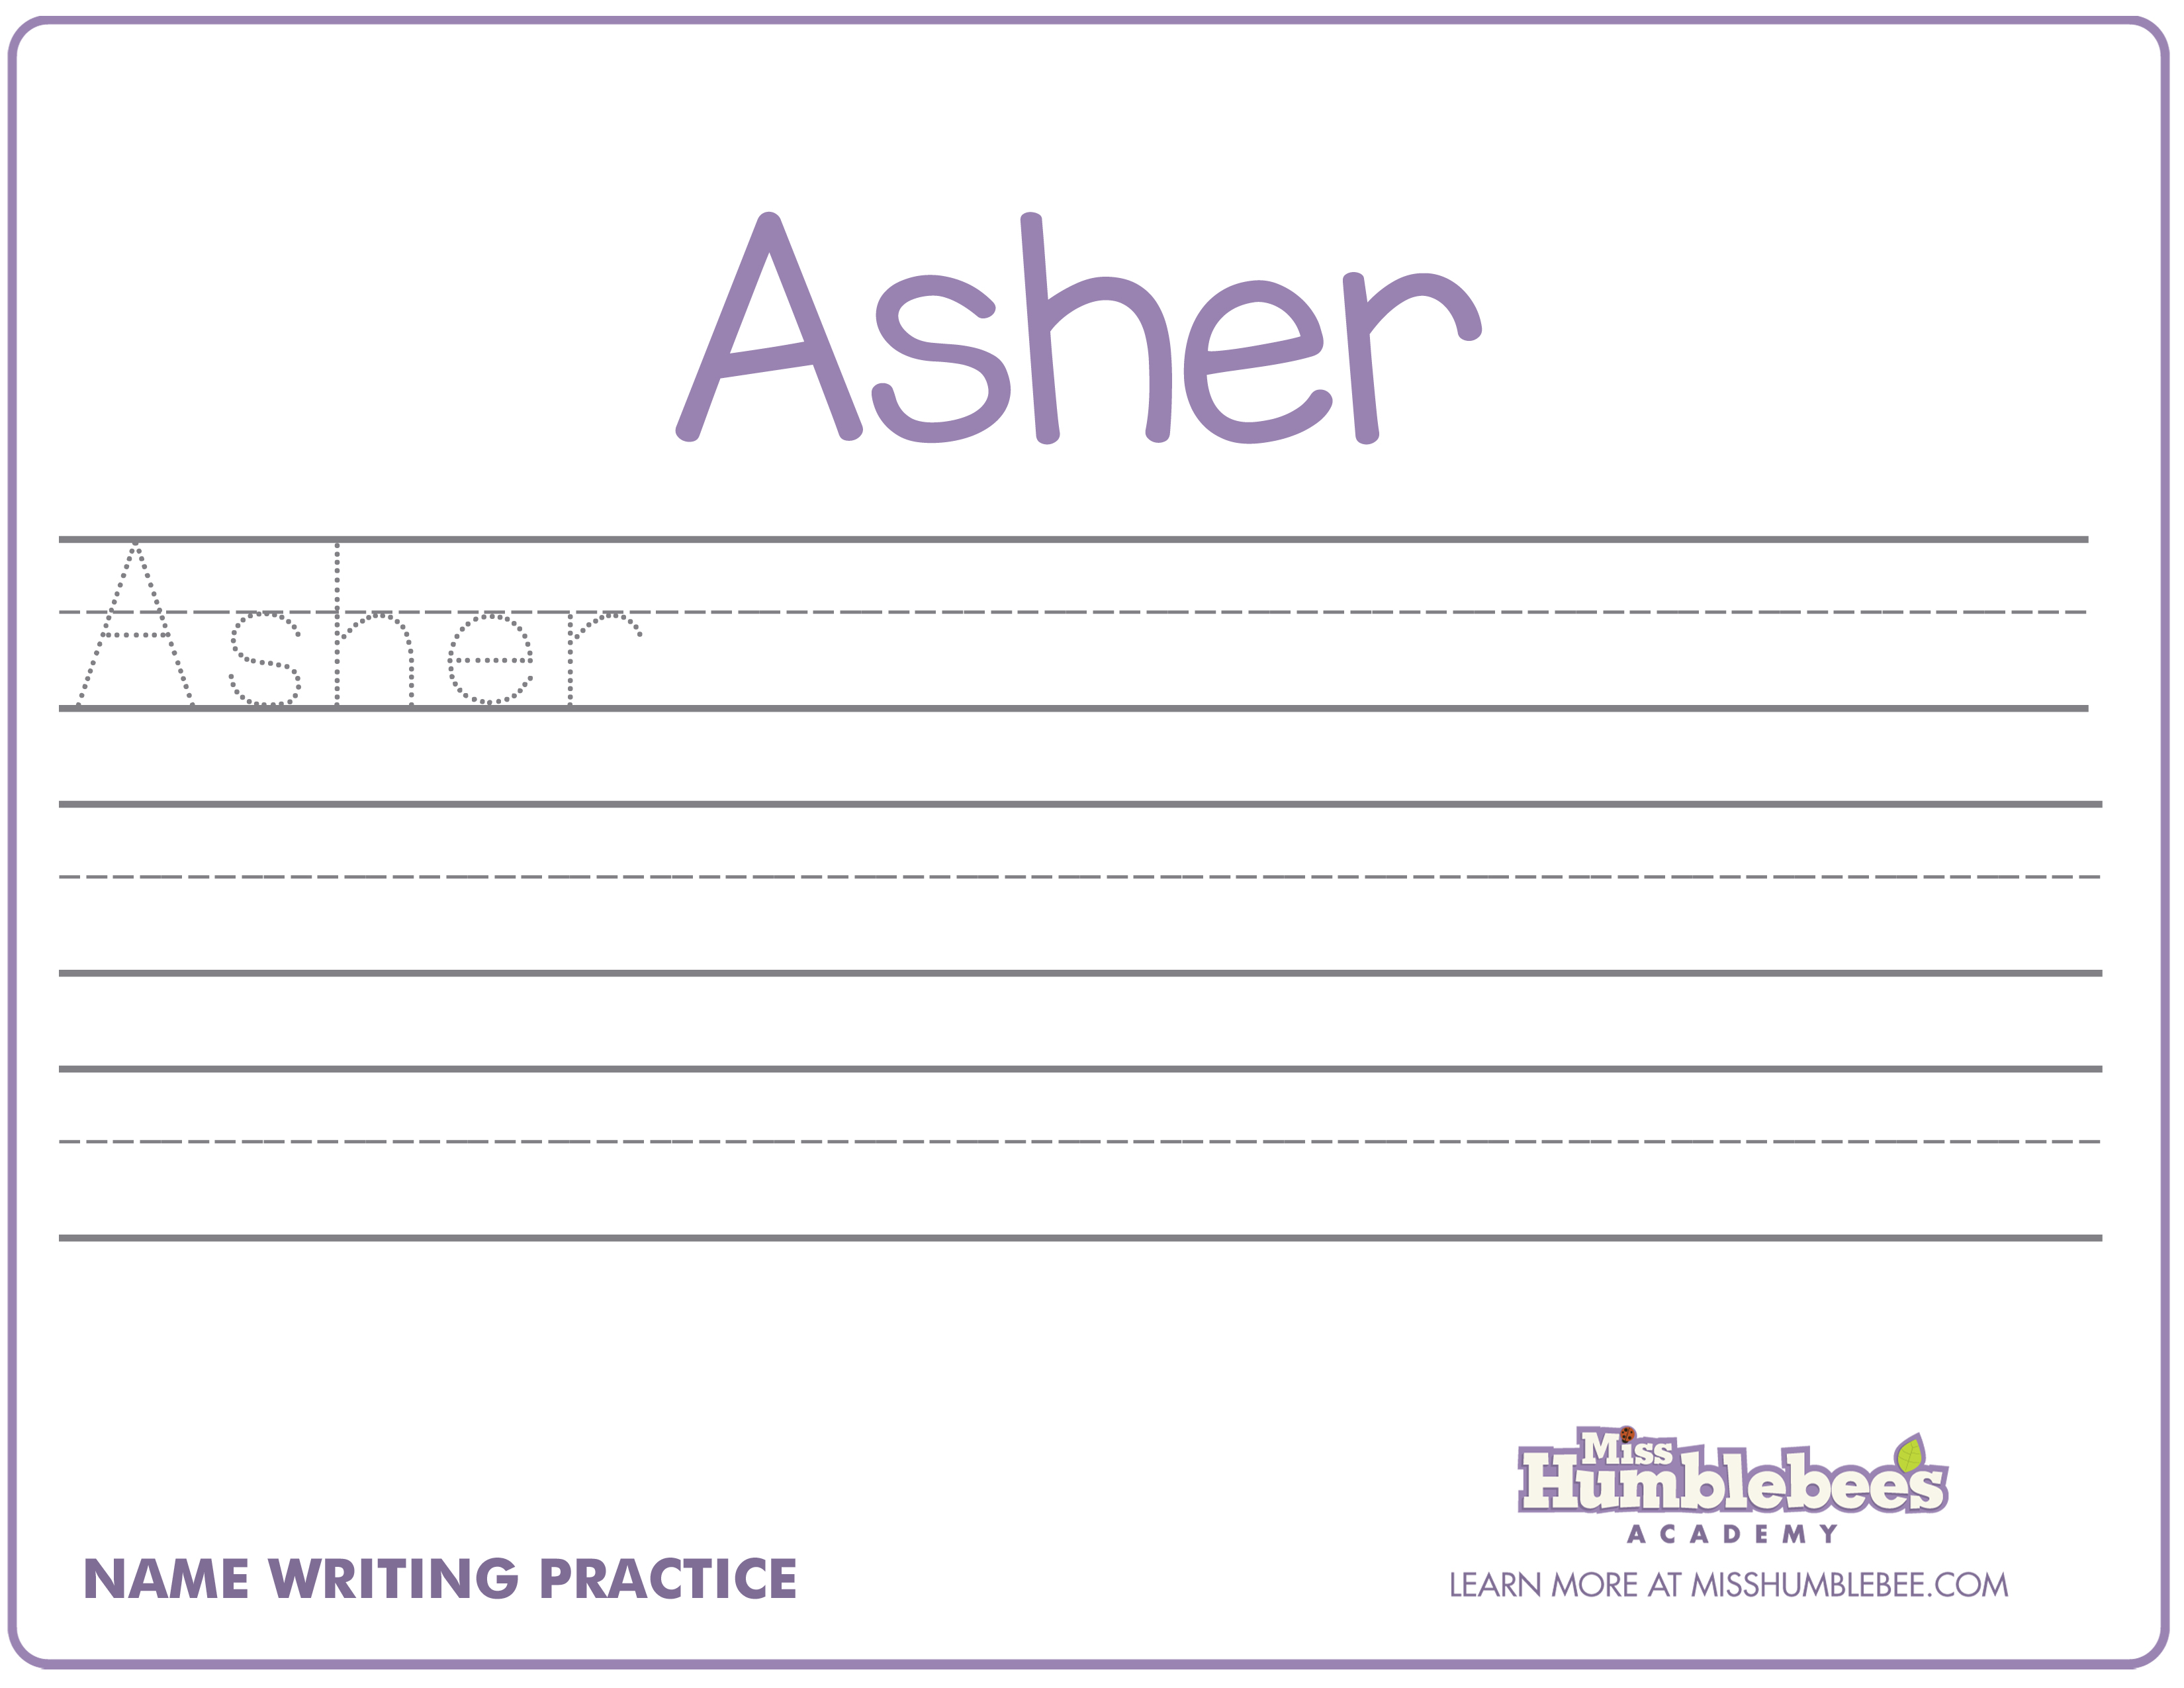 Worksheets Handwriting Worksheets For Kindergarten Names worksheet preschool writing practice wosenly free kindergarten name template handwriting worksheets for does it matter if a